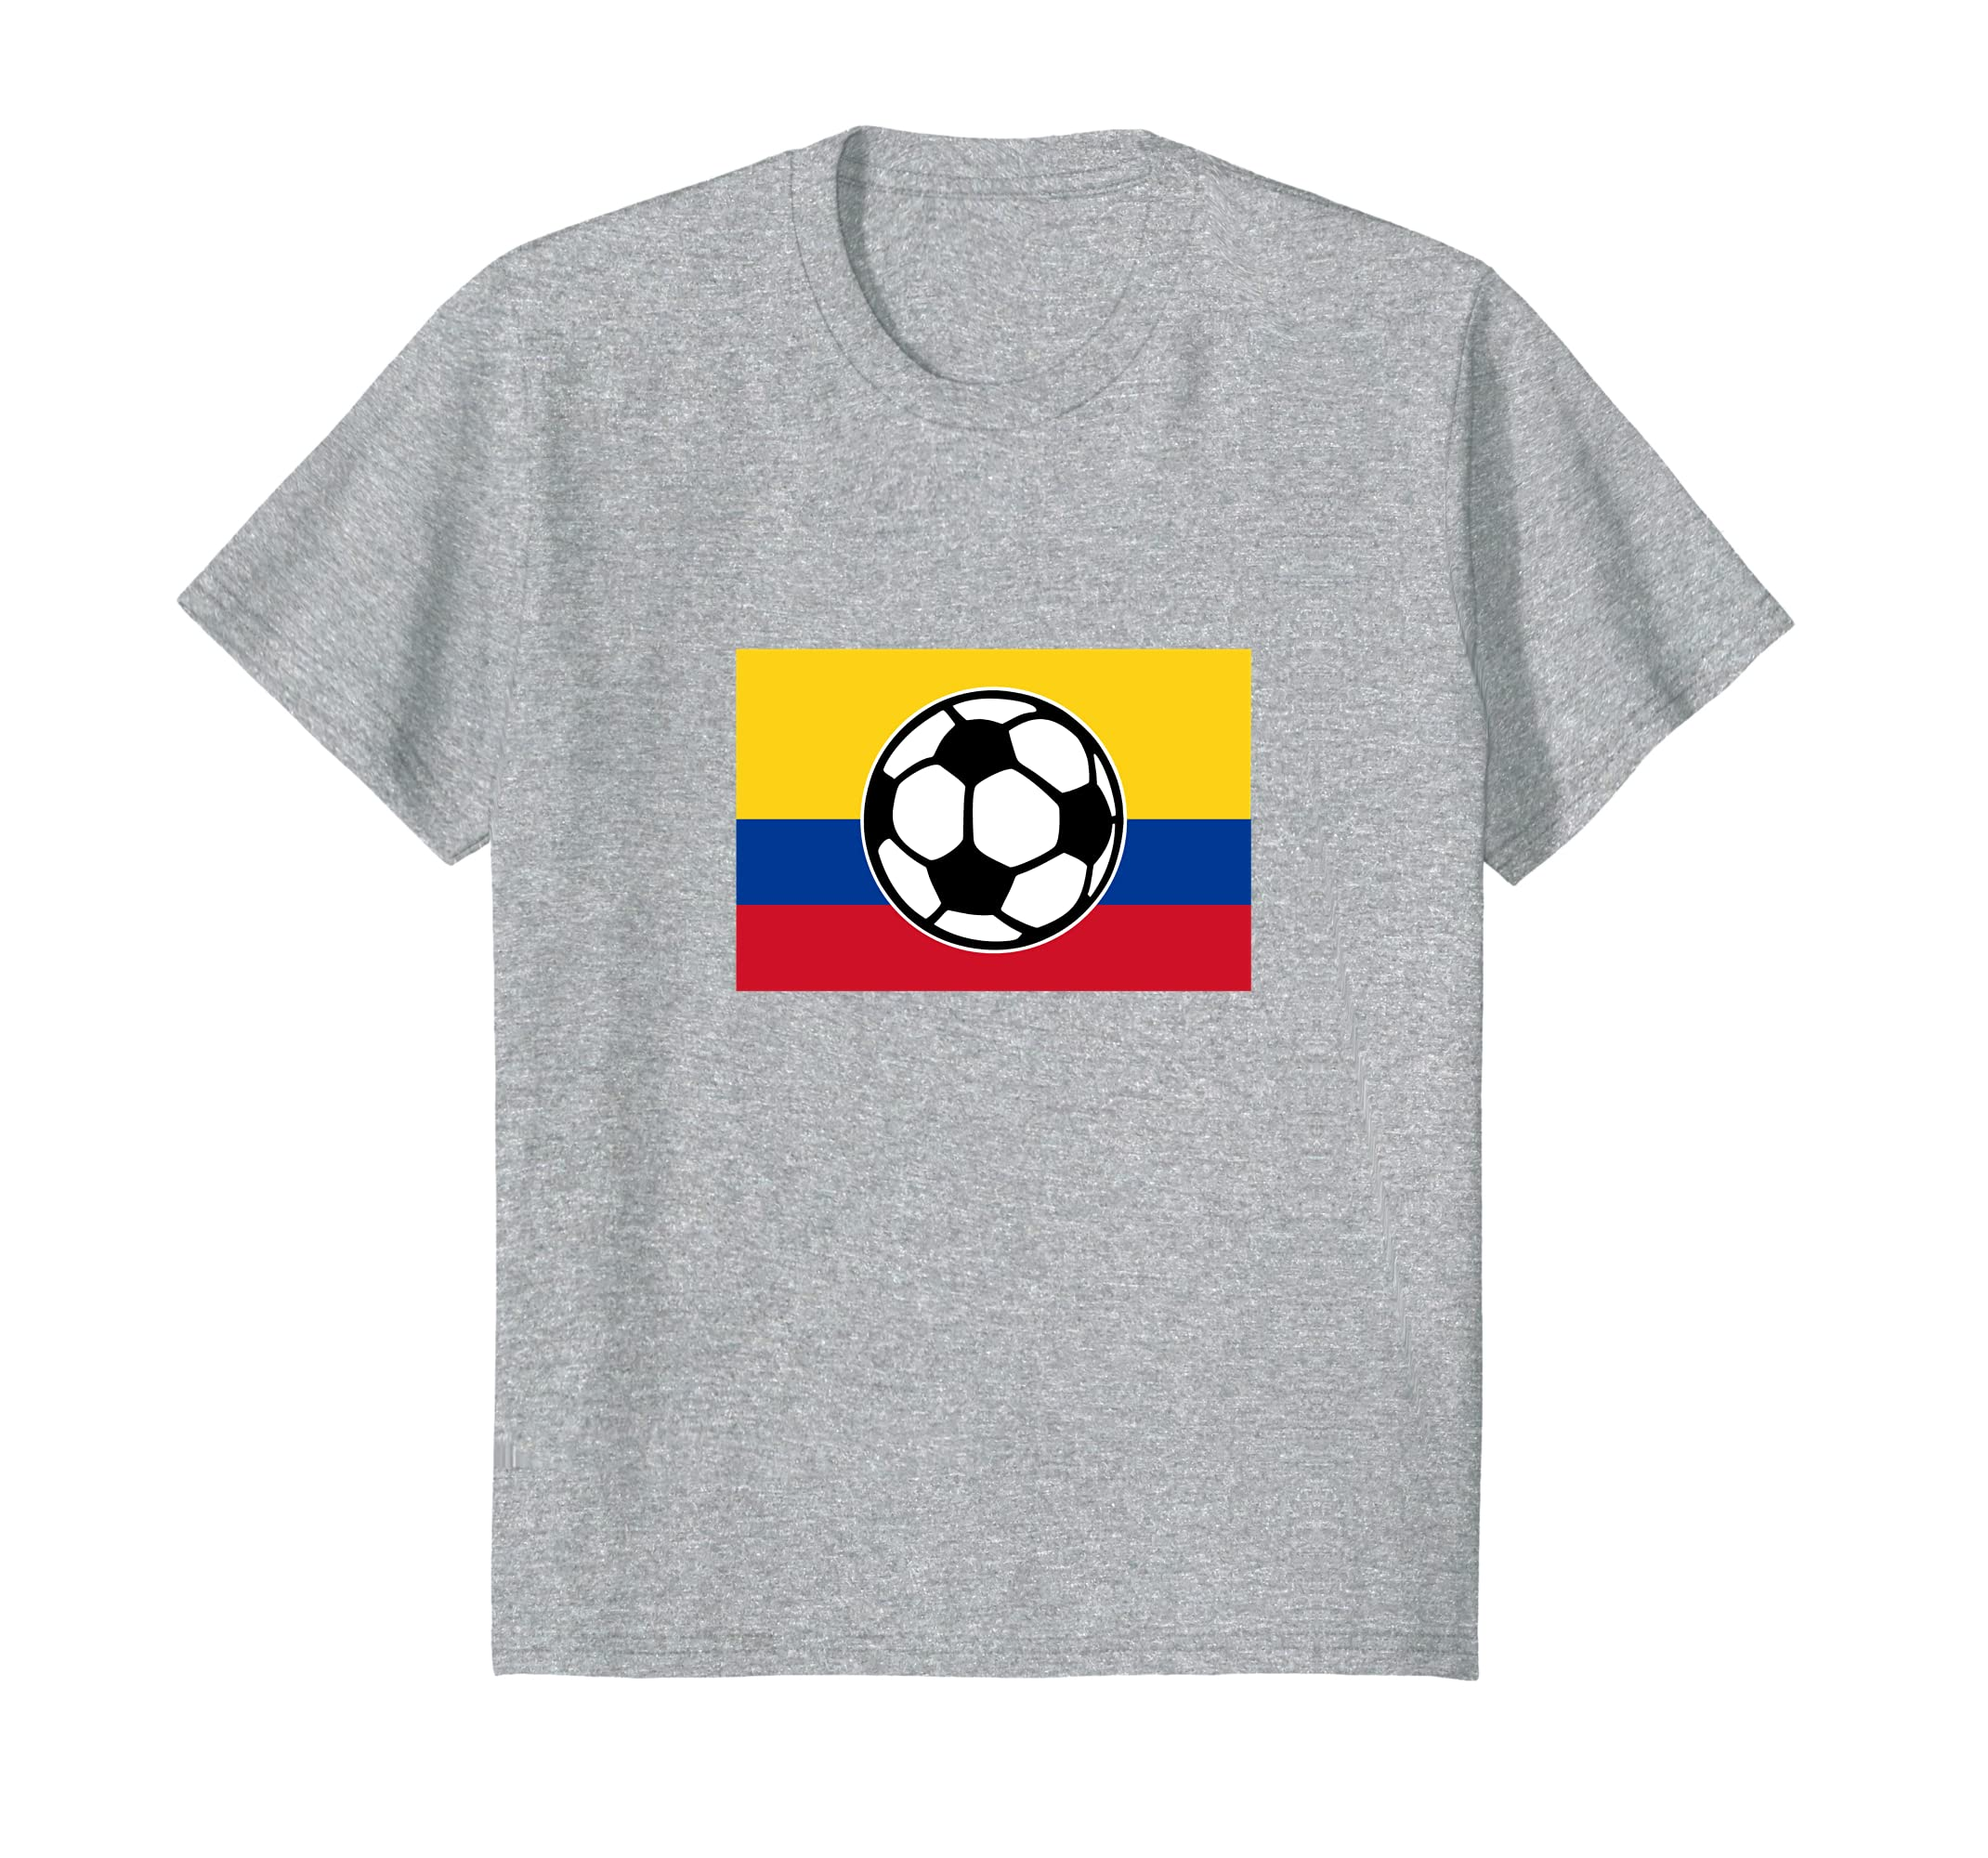 Amazon.com: Colombia Soccer T-Shirt for Colombian Football Fans: Clothing